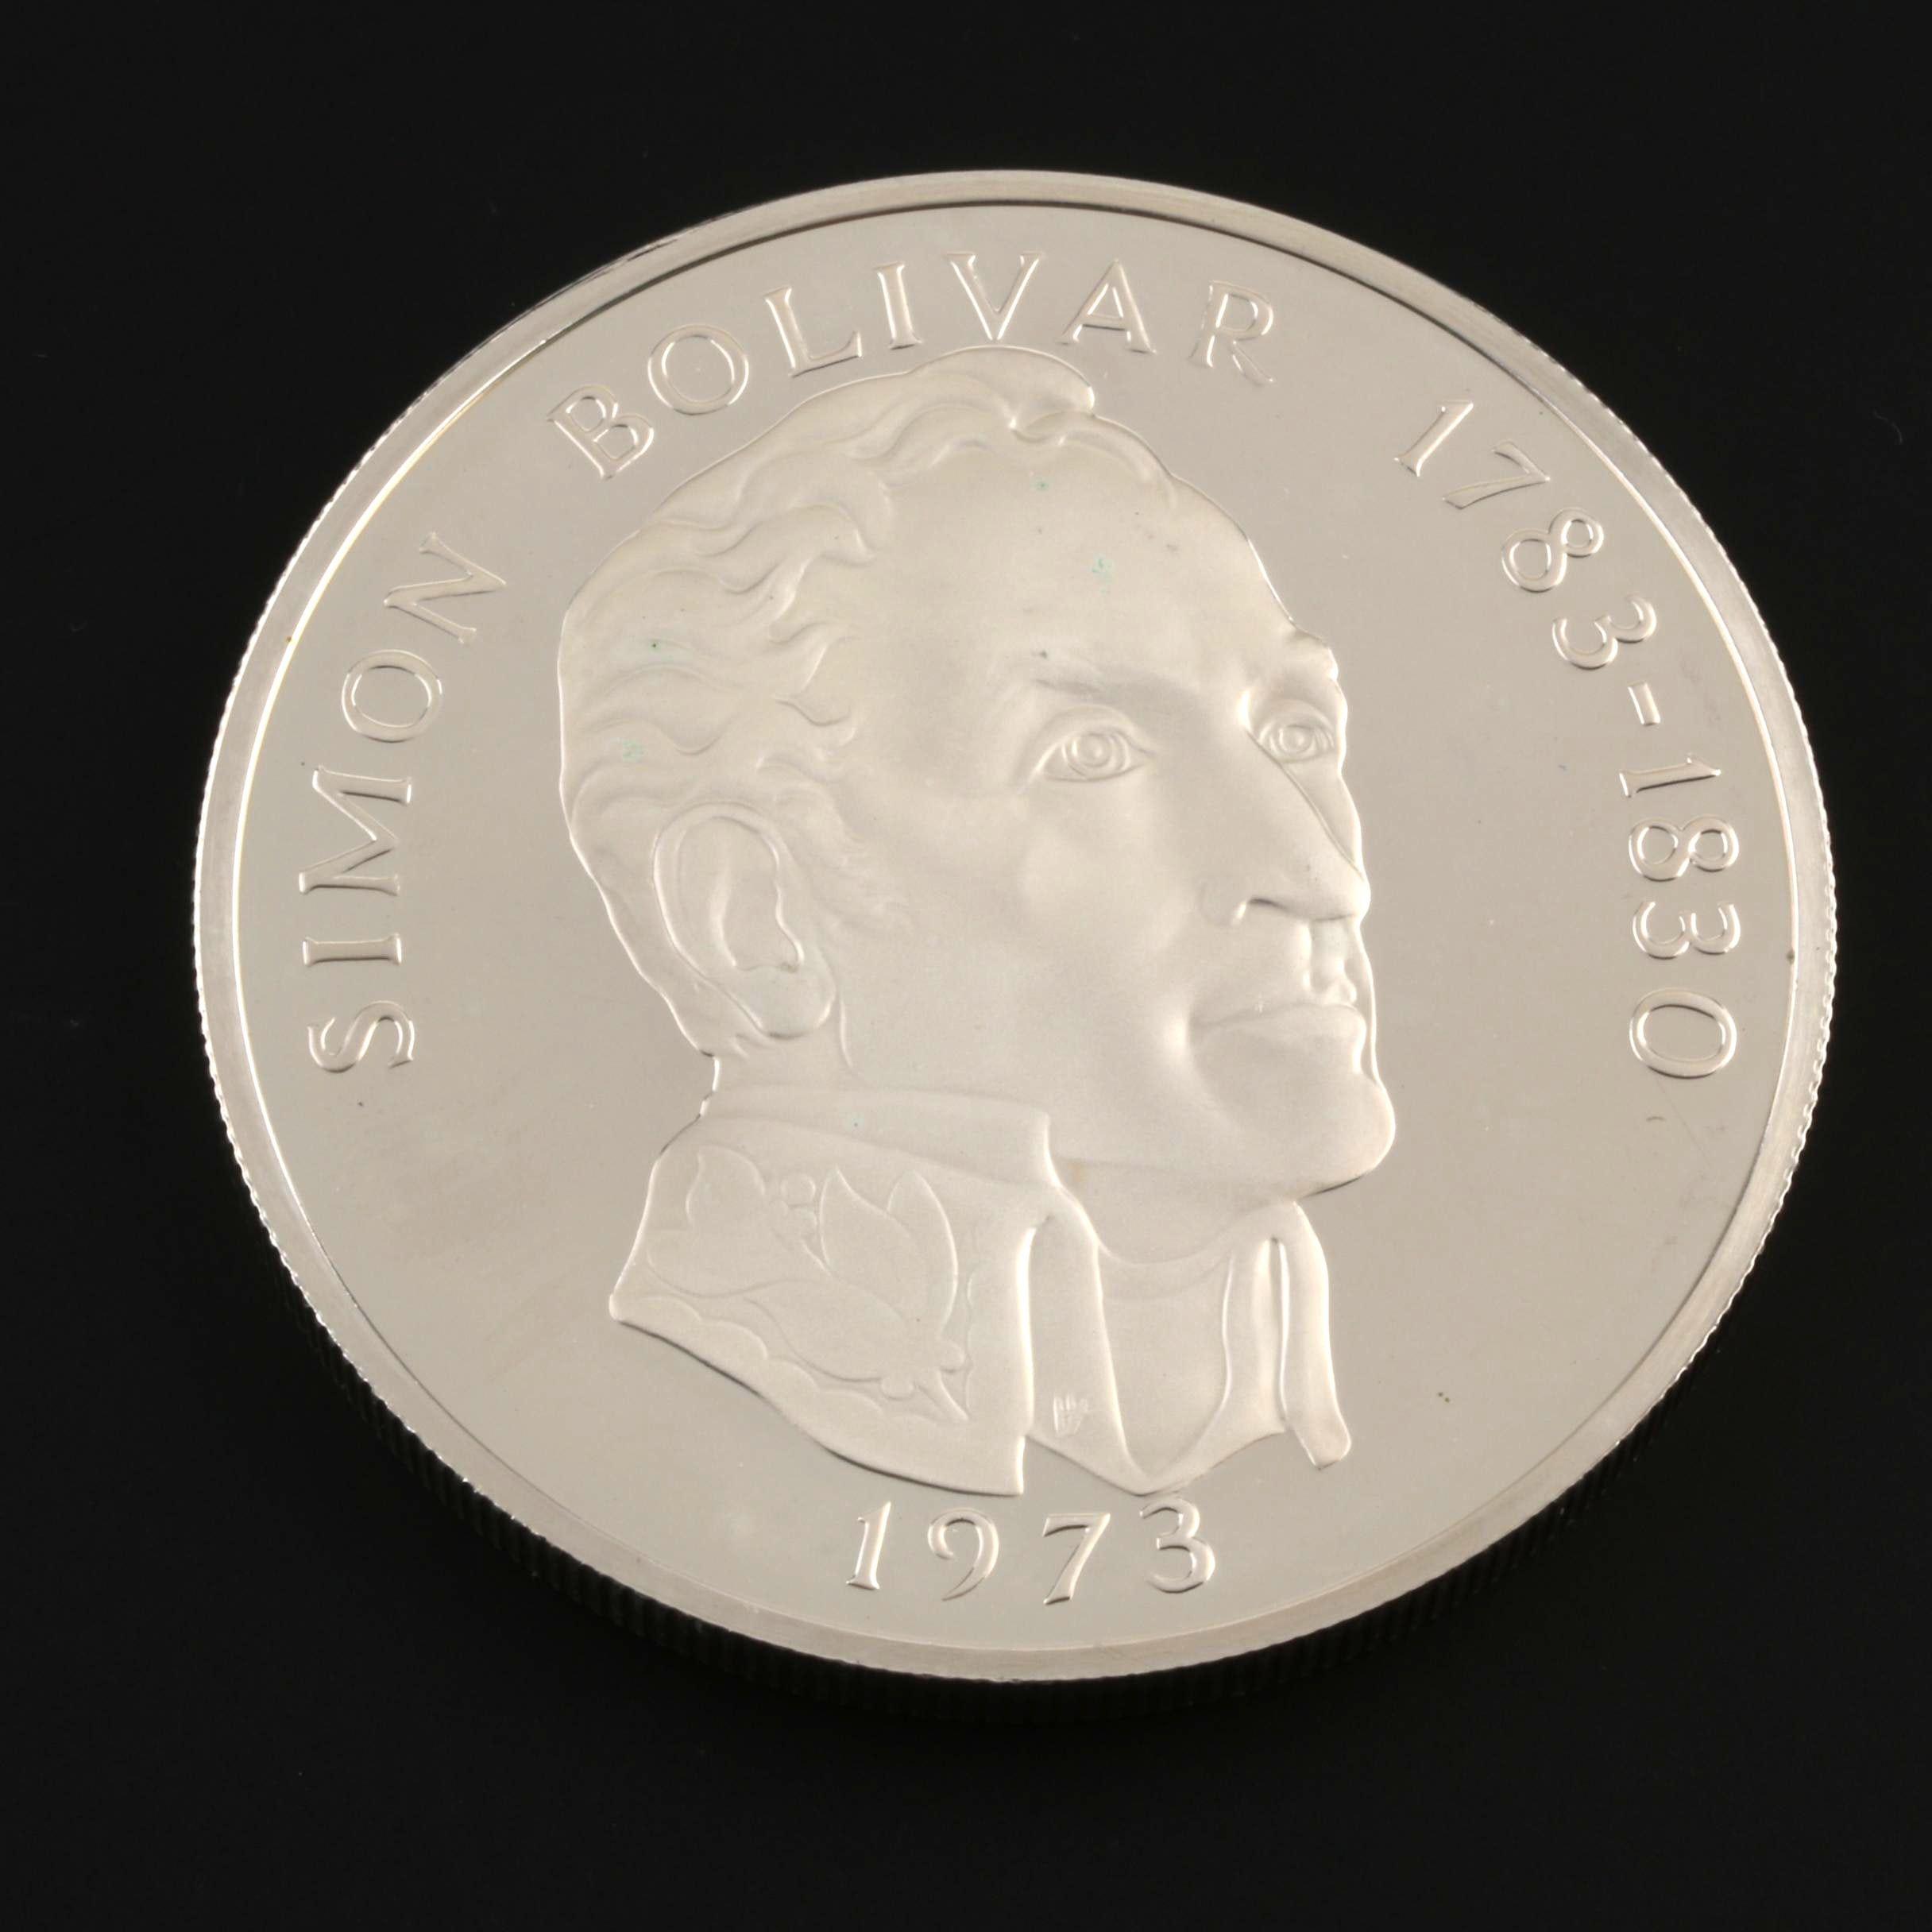 1973 Large Silver Proof 20 Balboas Commemorative Coin From Panama